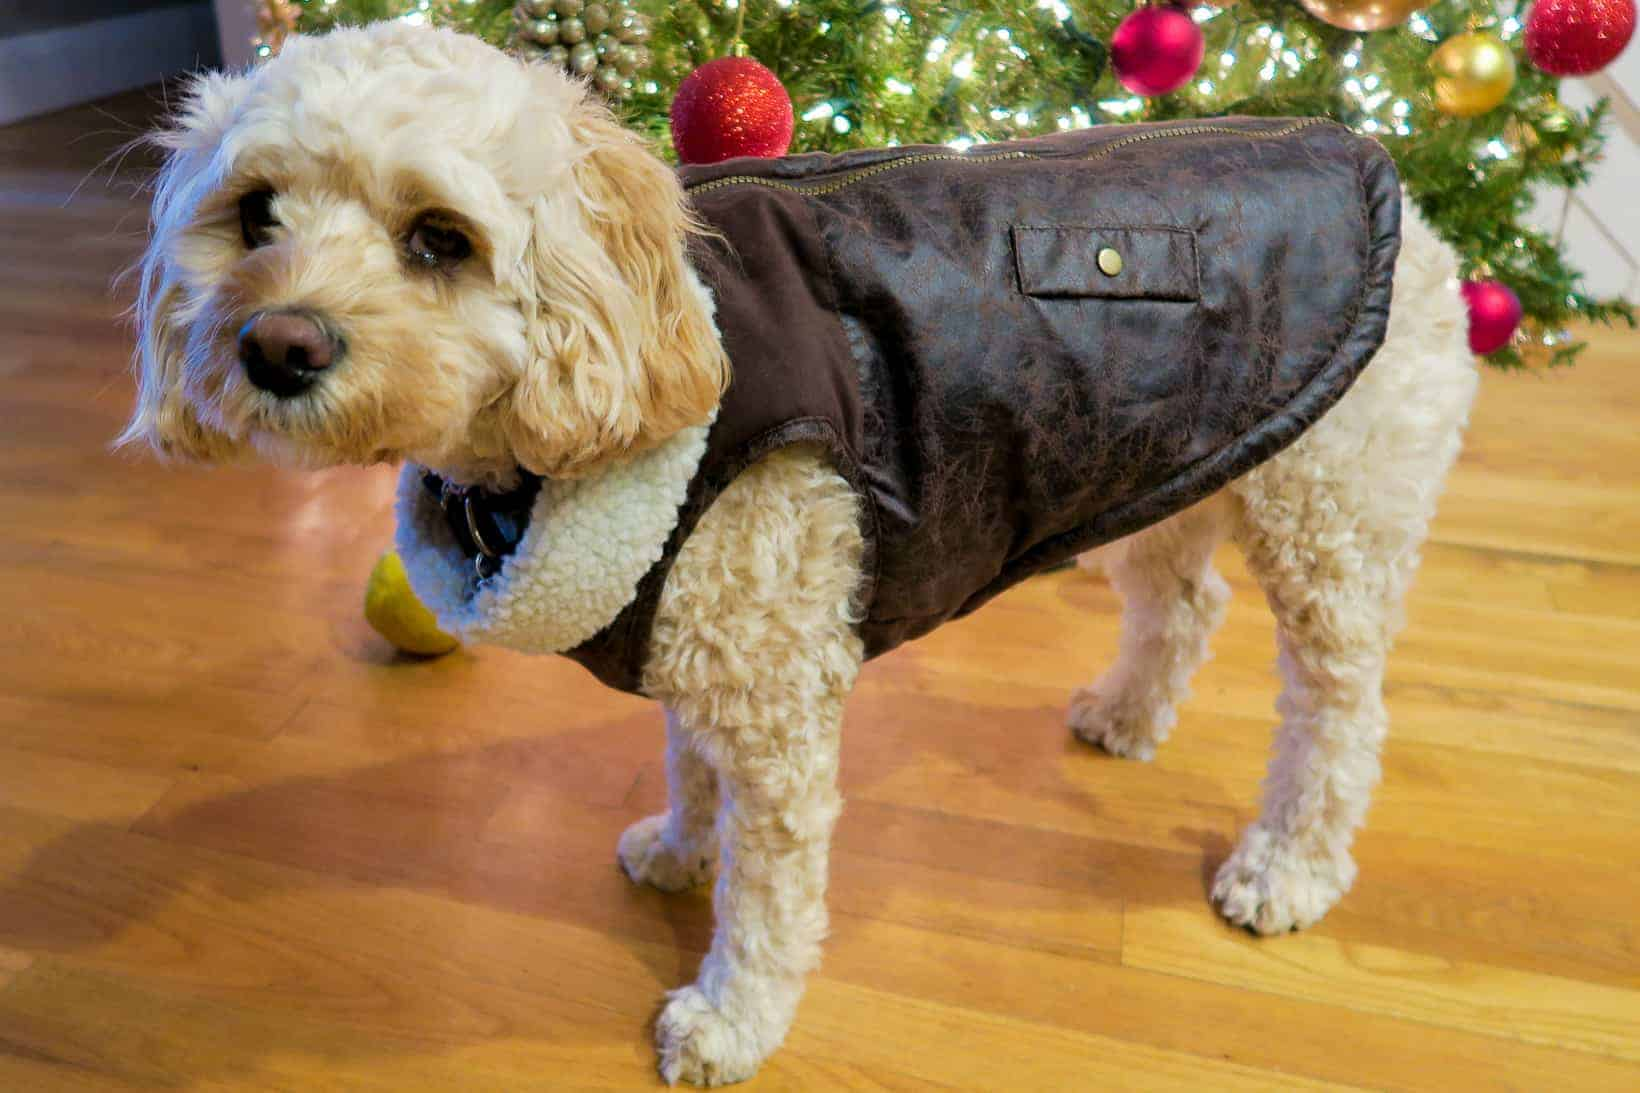 Outfits for your dog: Bomber Jacket by Bond & Co. The perfect outfit for any dog who wants to be cool.